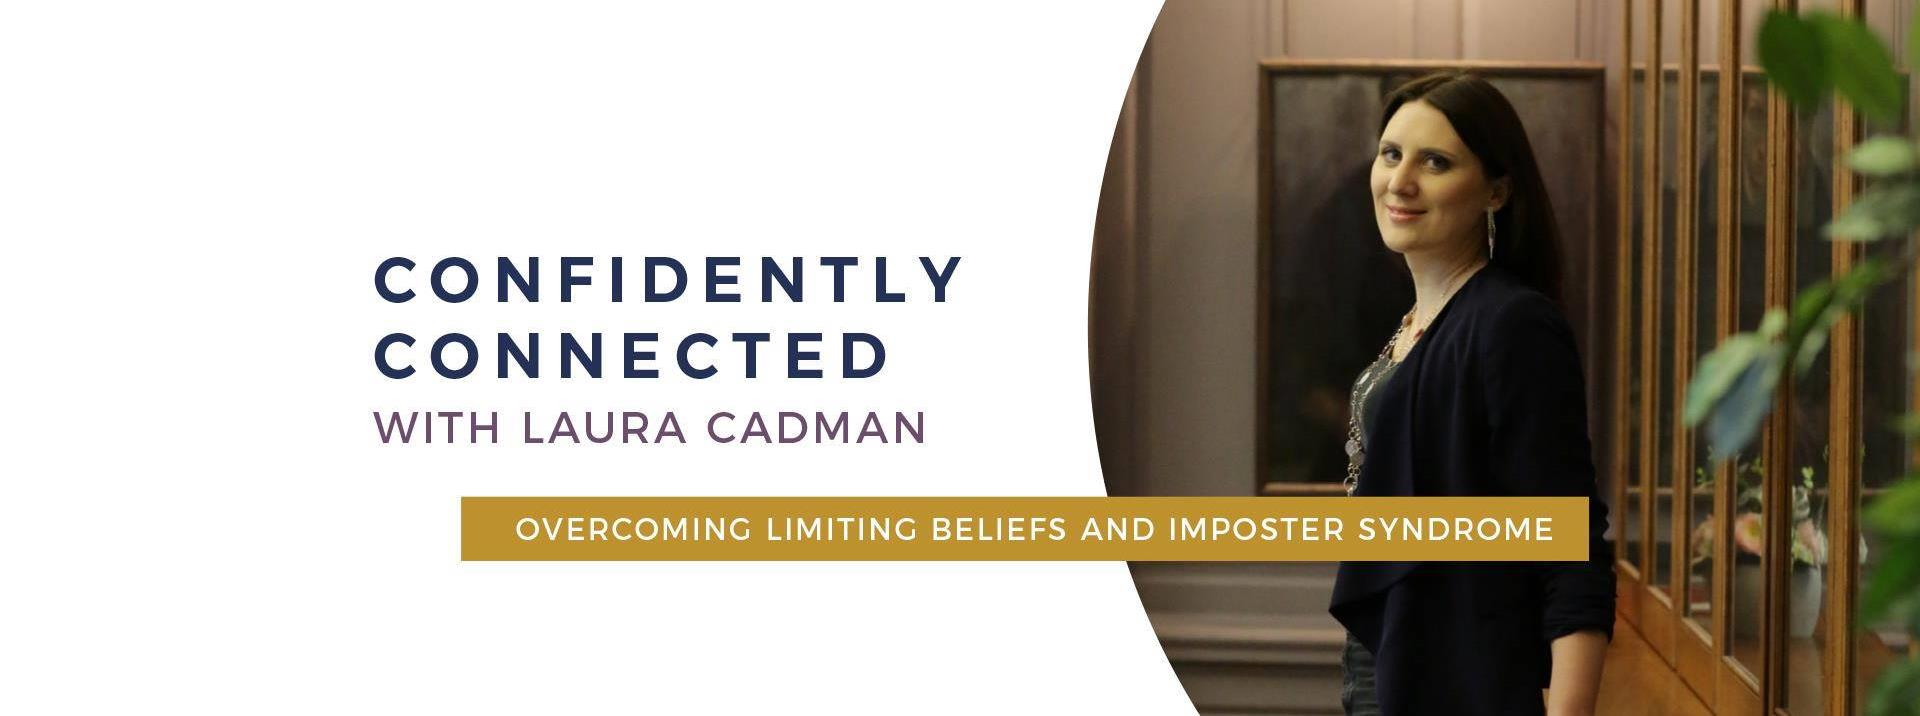 Laura Cadman - Confidently Connected